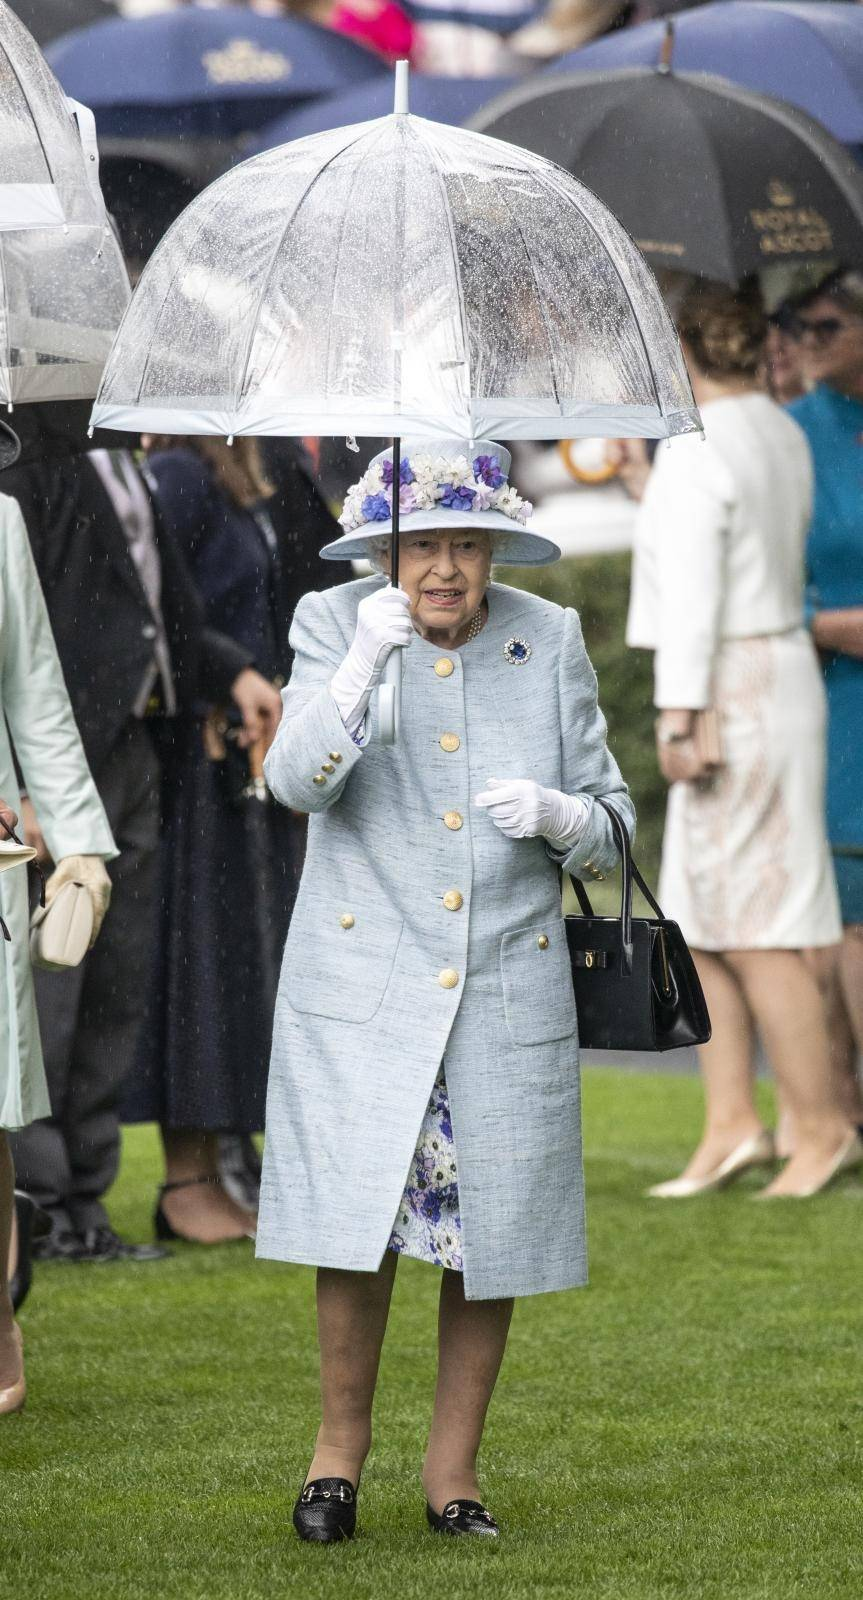 Queen at Royal Ascot day 2